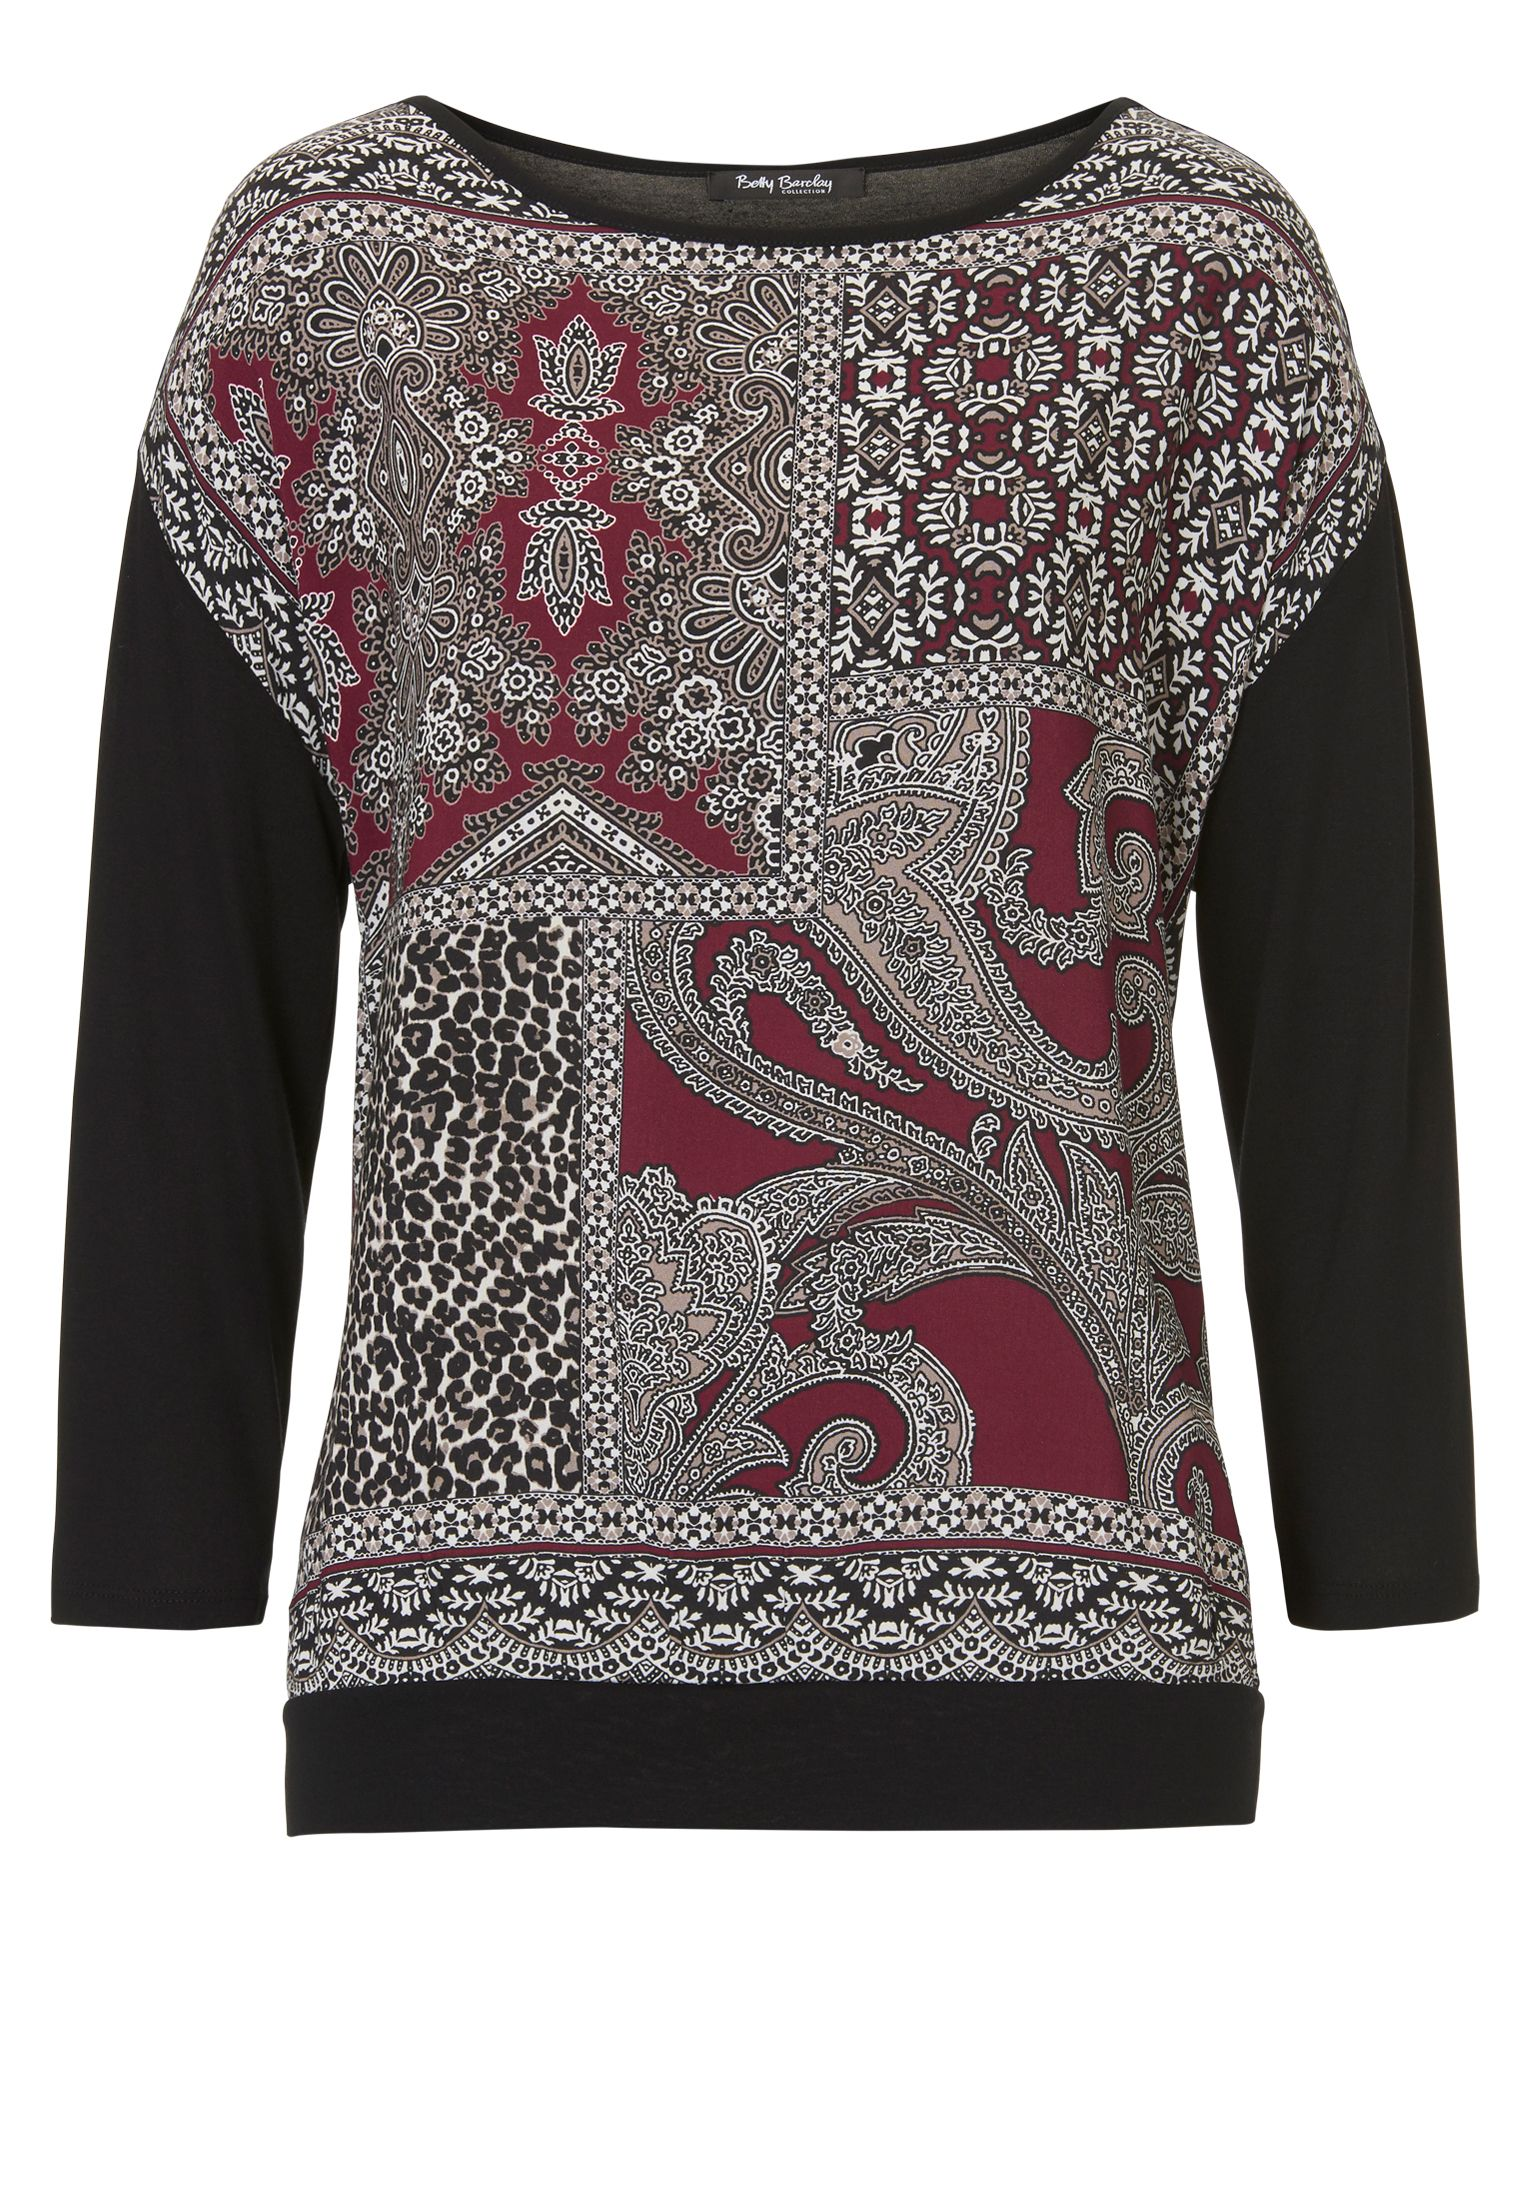 Betty Barclay Paisley print top, Multi-Coloured